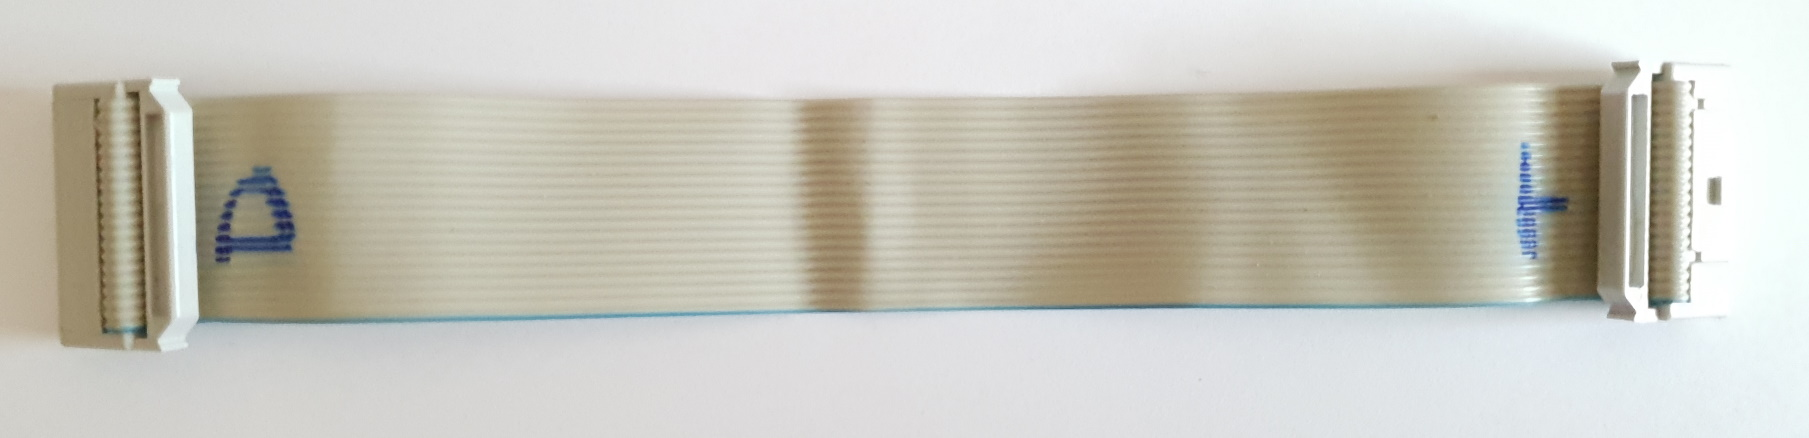 Example 20 Pin JTAG Ribbon cable with (D)ebugger and (T)arget marked